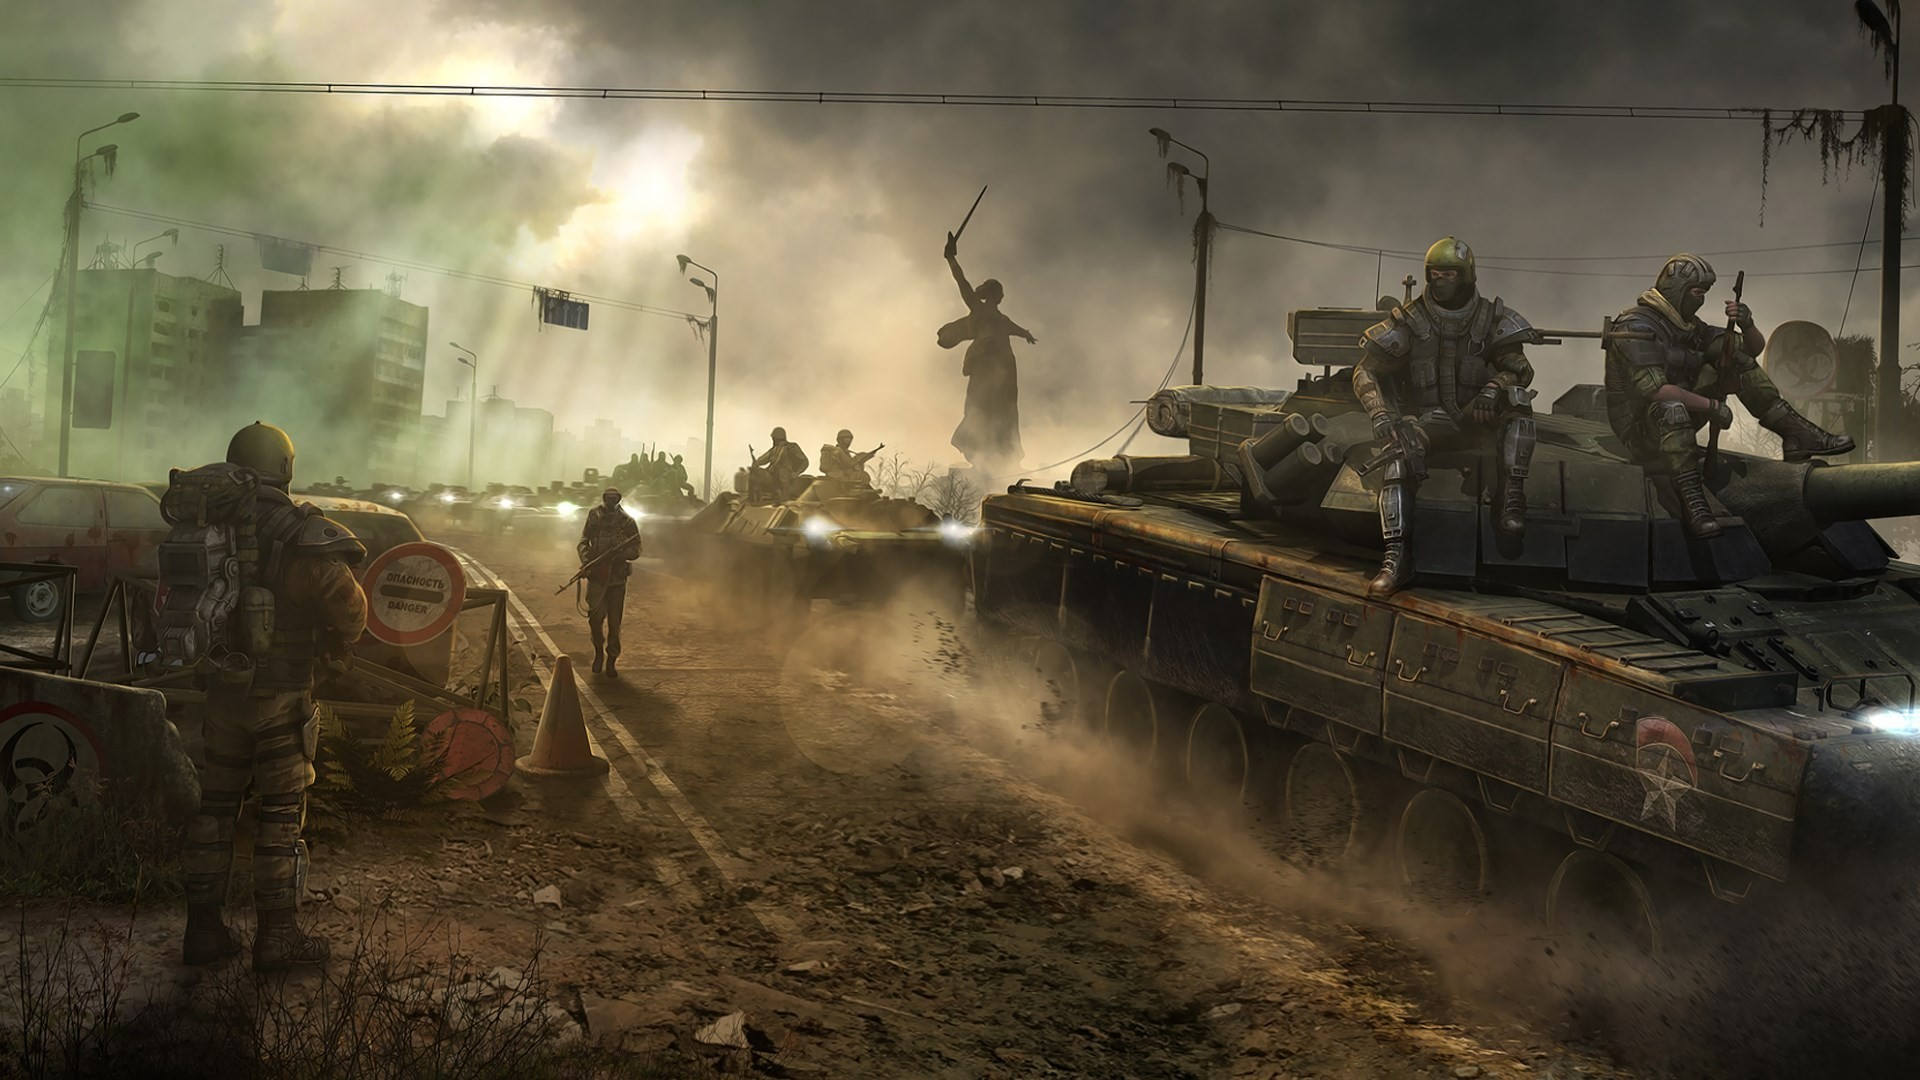 Hd wallpaper · Post Apocalyptic Wallpapers April 2014